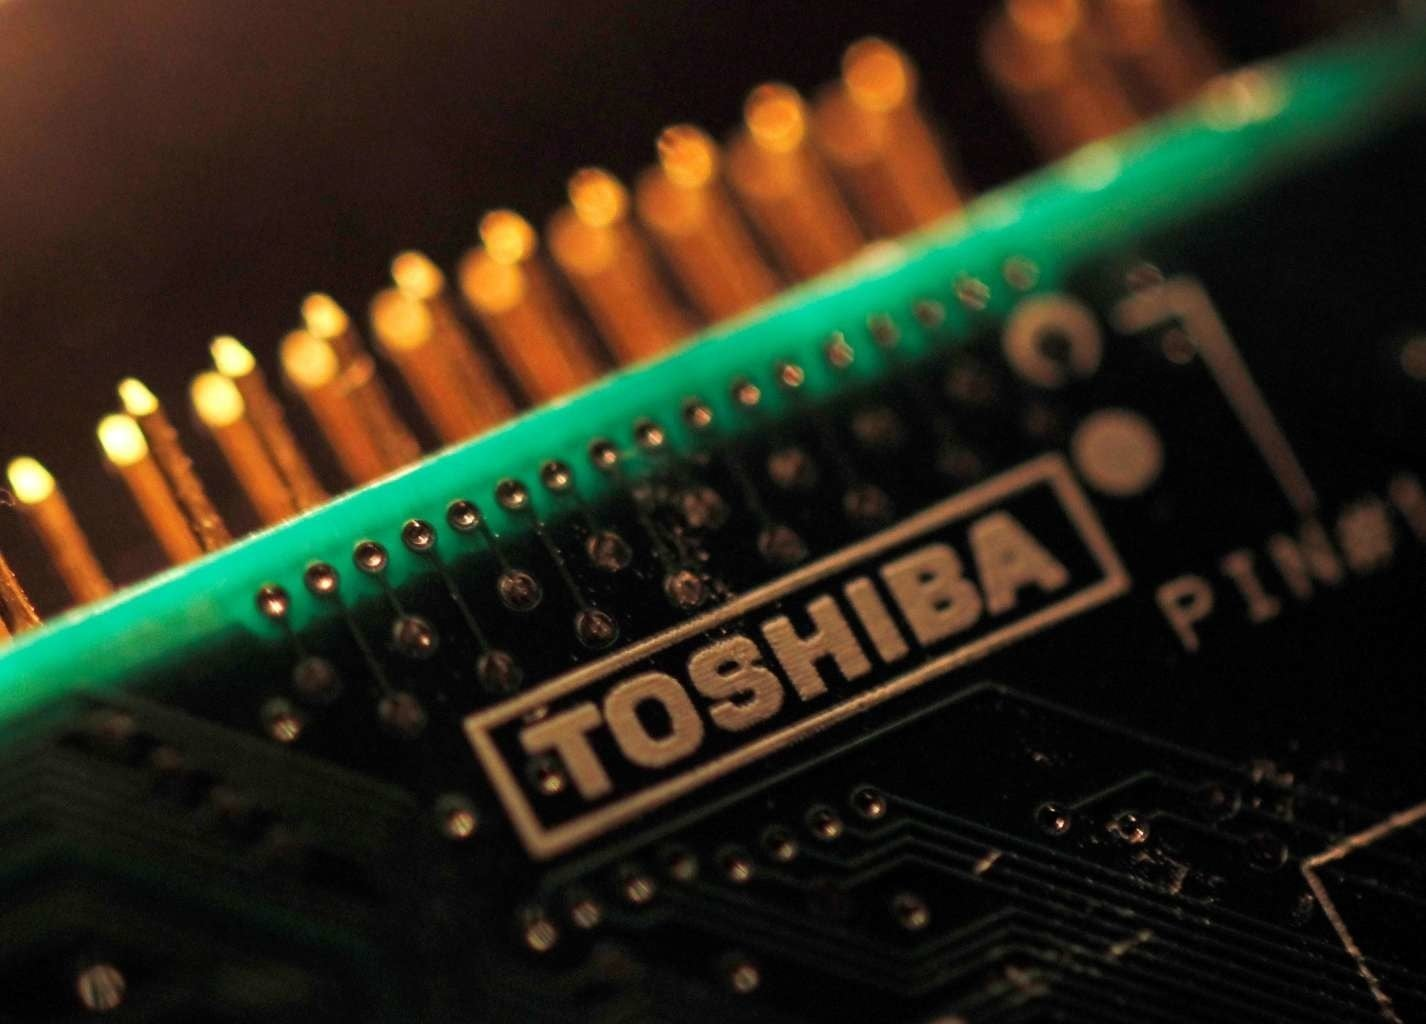 Apple Inc. (AAPL) Reportedly Holding Up Toshiba Chip Unit Deal